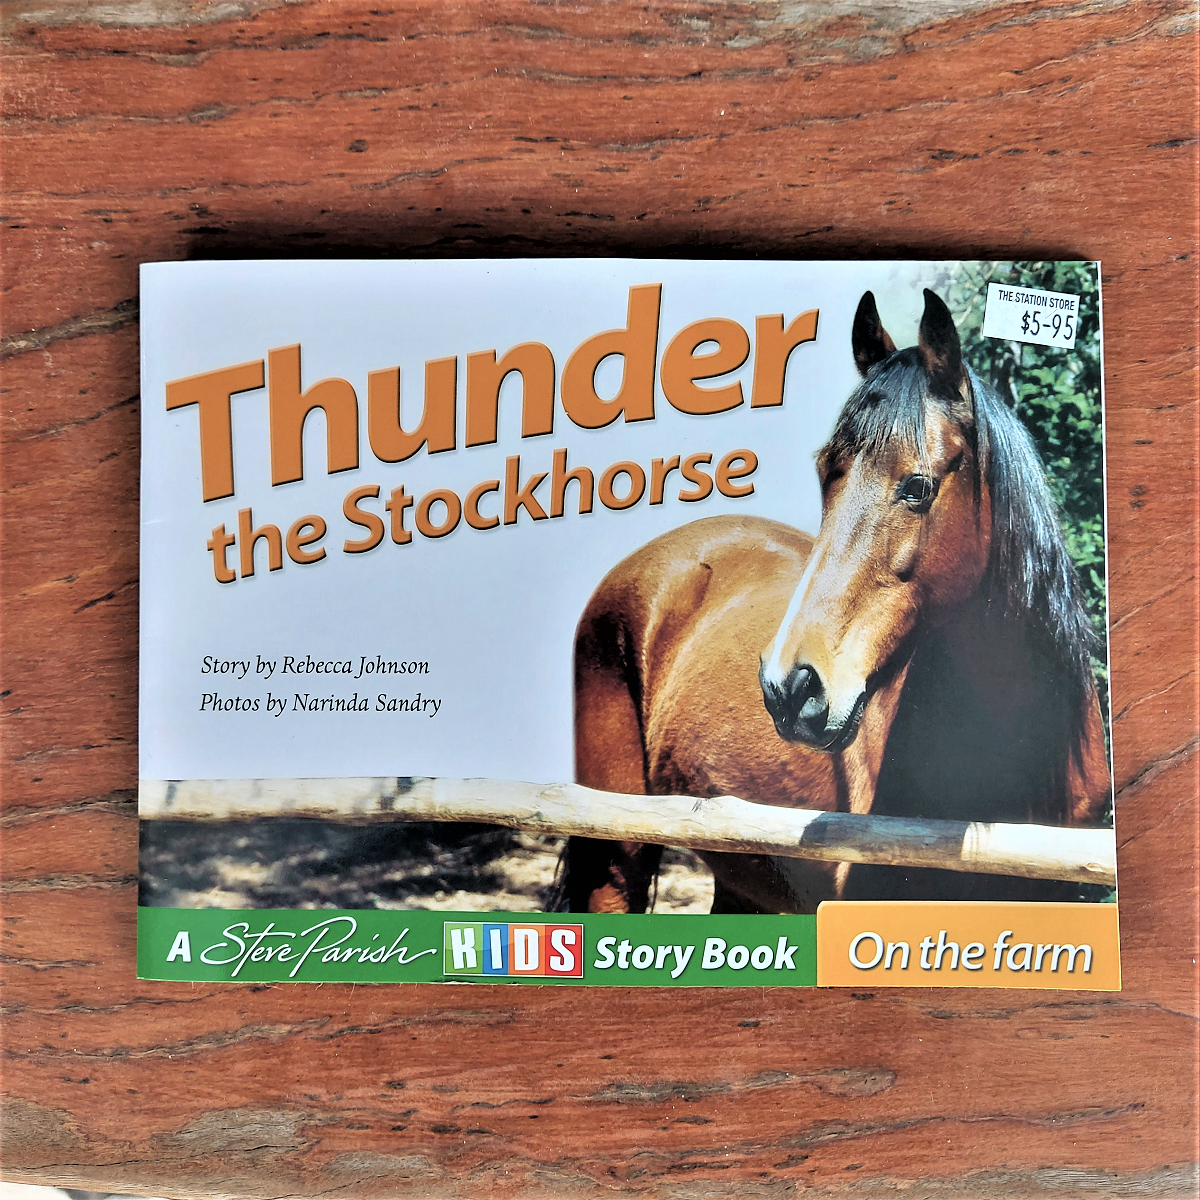 Children's Book Thunder the Stockhorse